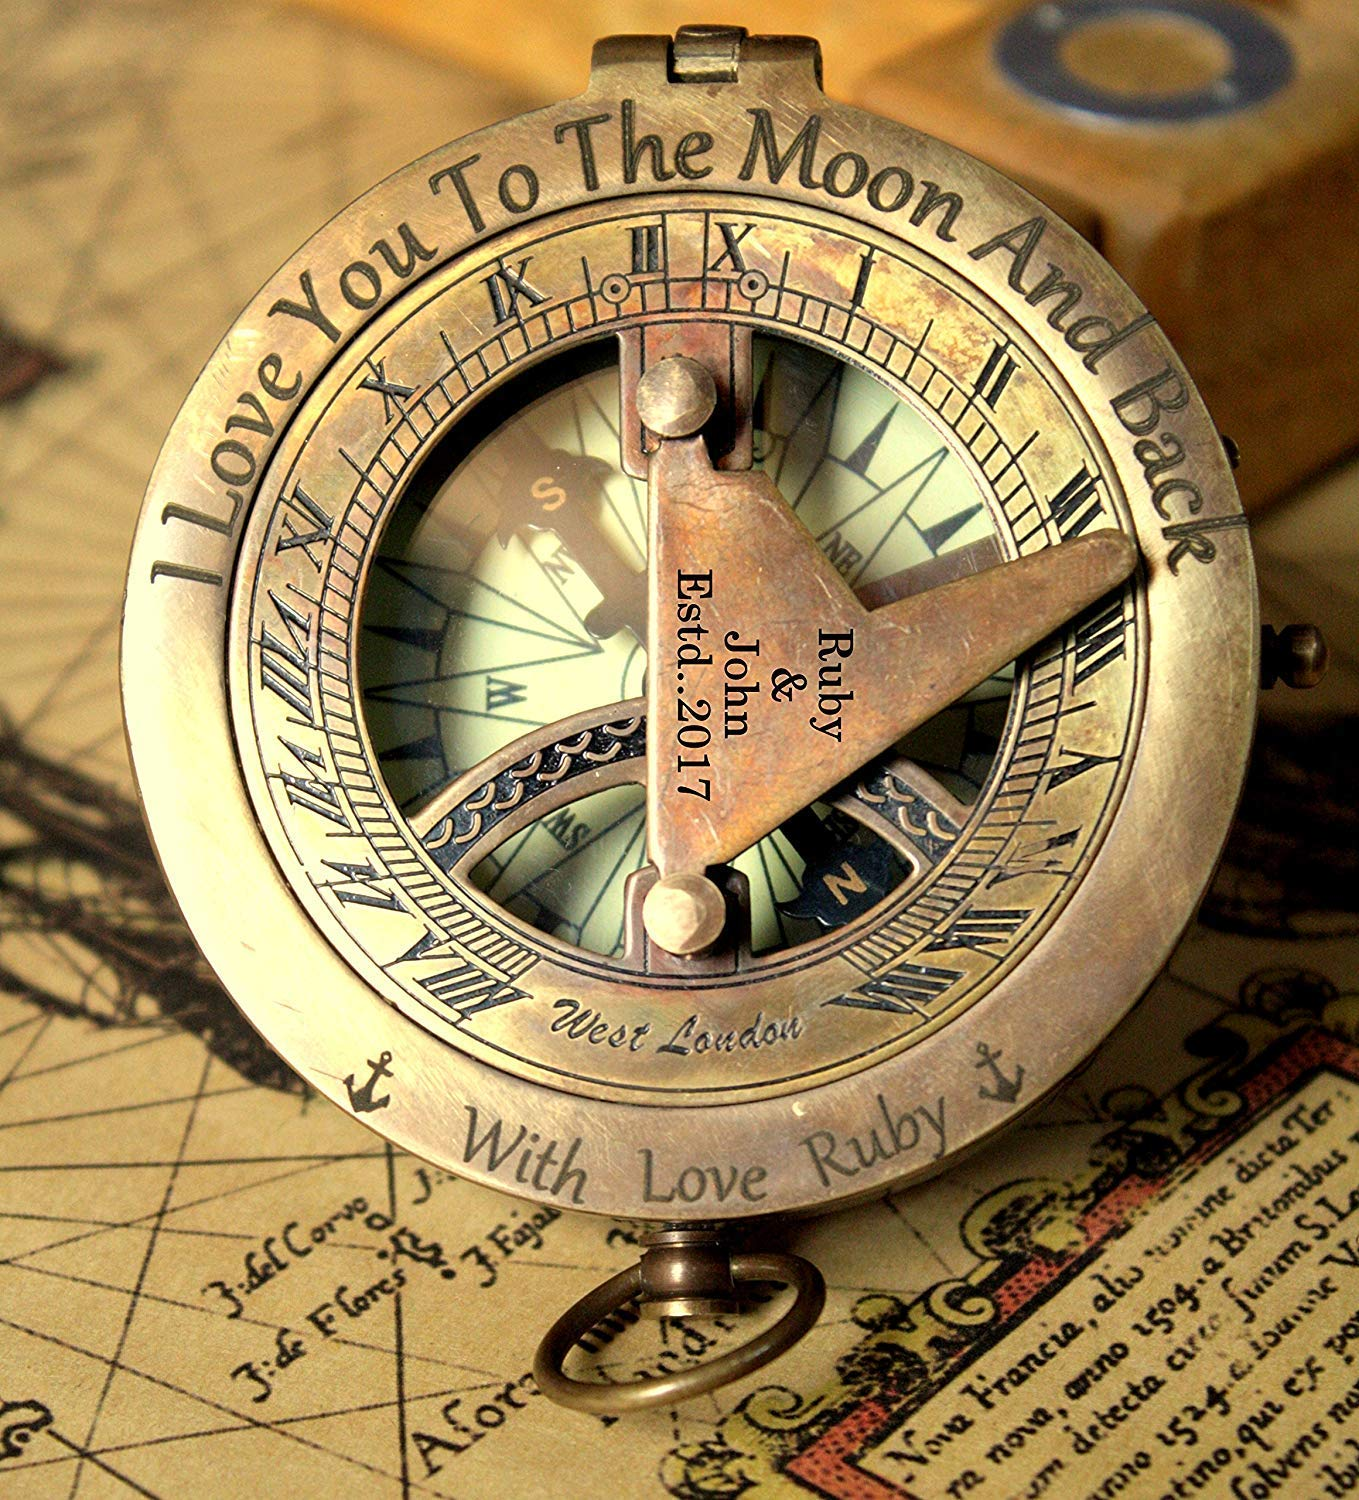 Personalized engraved sundial compass, Engraving on top lid and gnomon, Gift for all occasions, Christmas, New year, Graduation, Love gift, Get well soon, wedding anniversary. Free real leather case